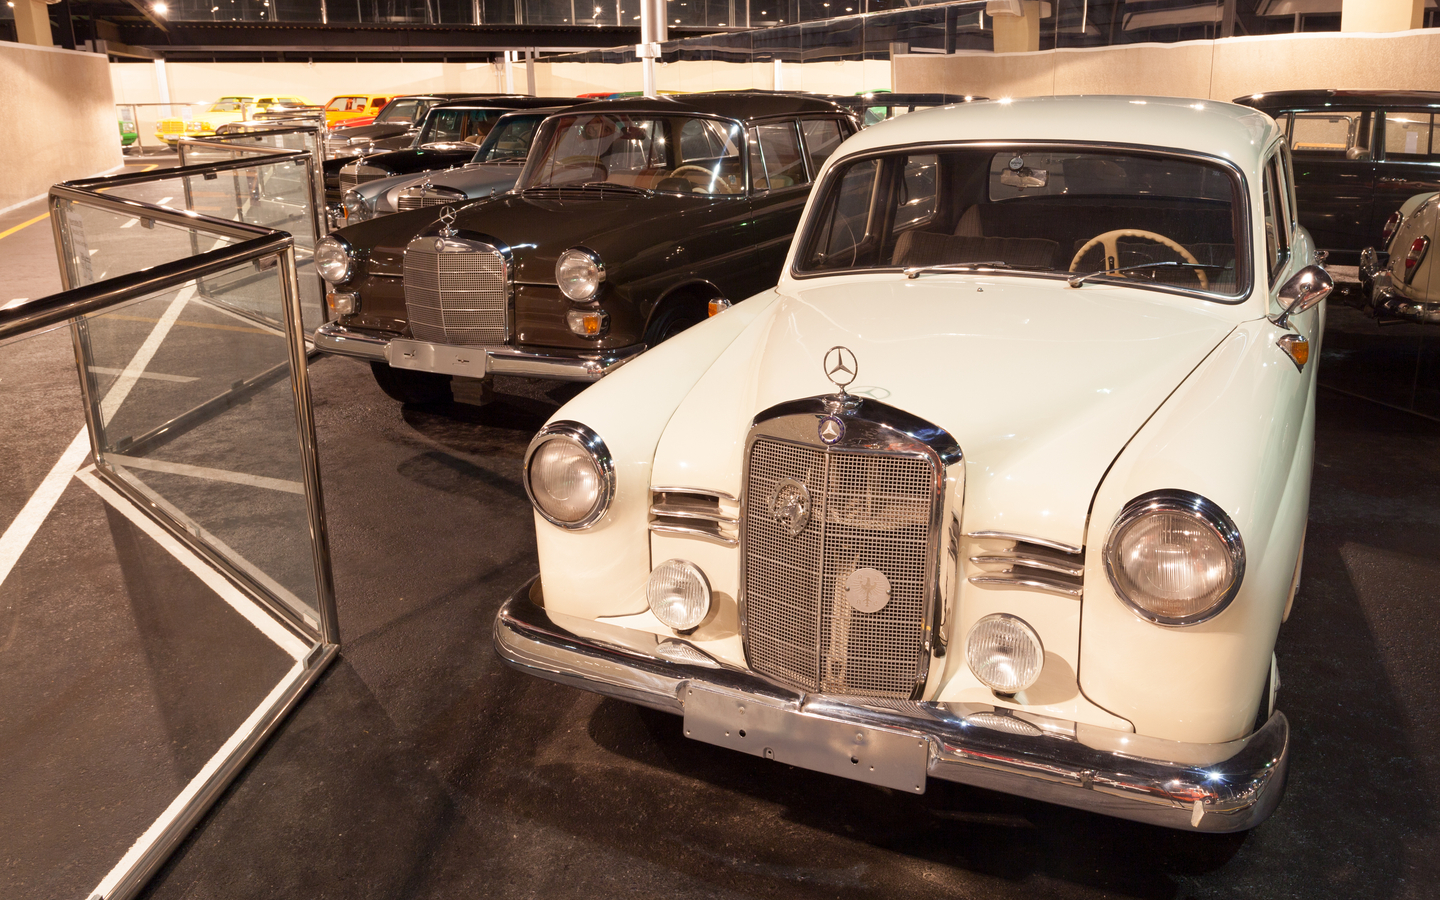 Car collection at Emirates National Auto Museum in Abu Dhabi